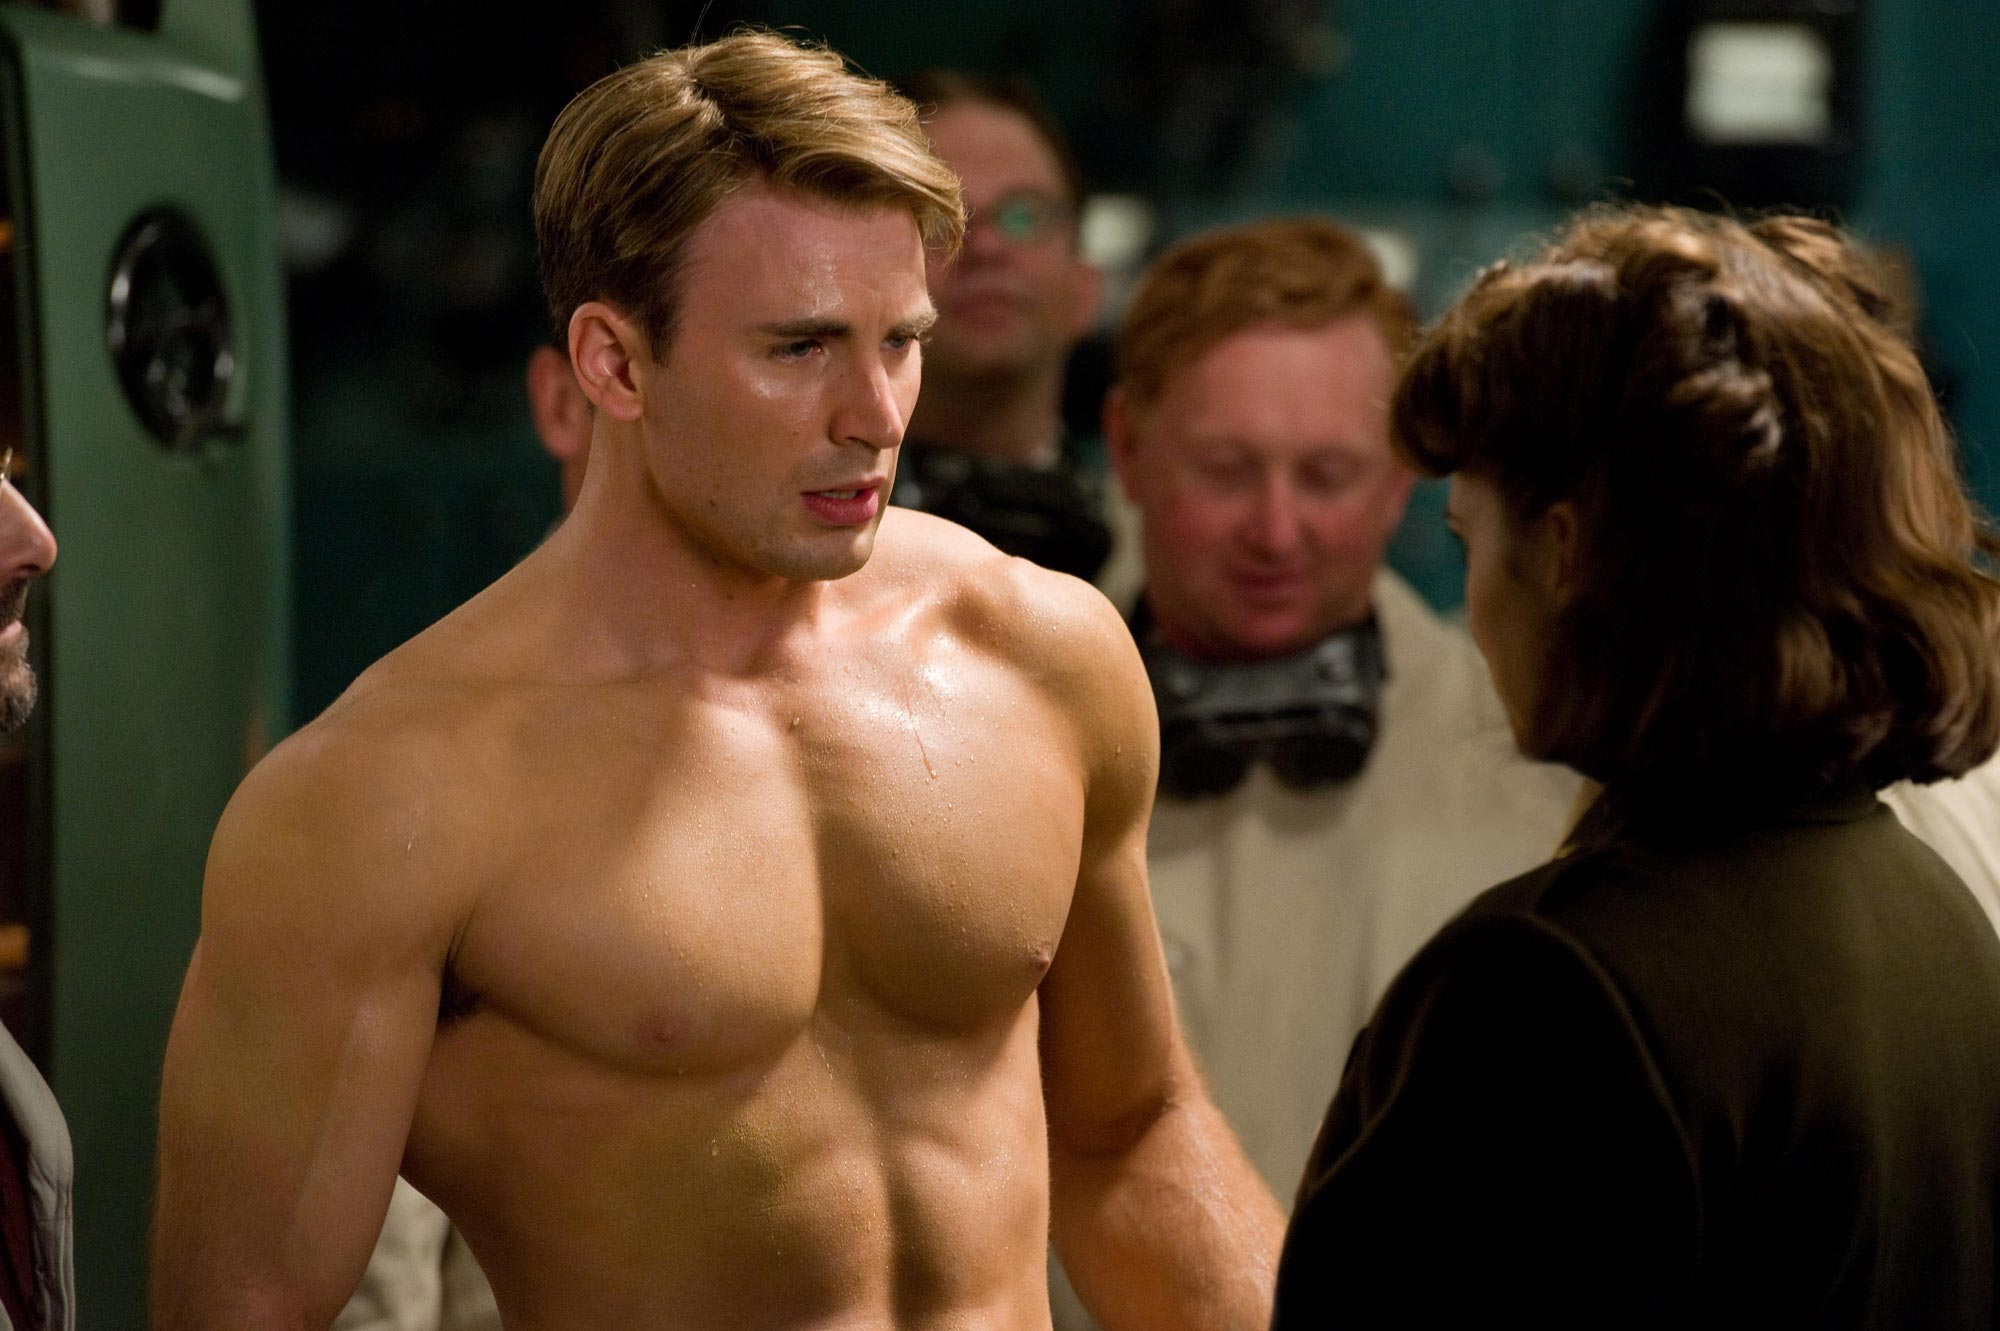 Chris Evans Captain America The First Avenger